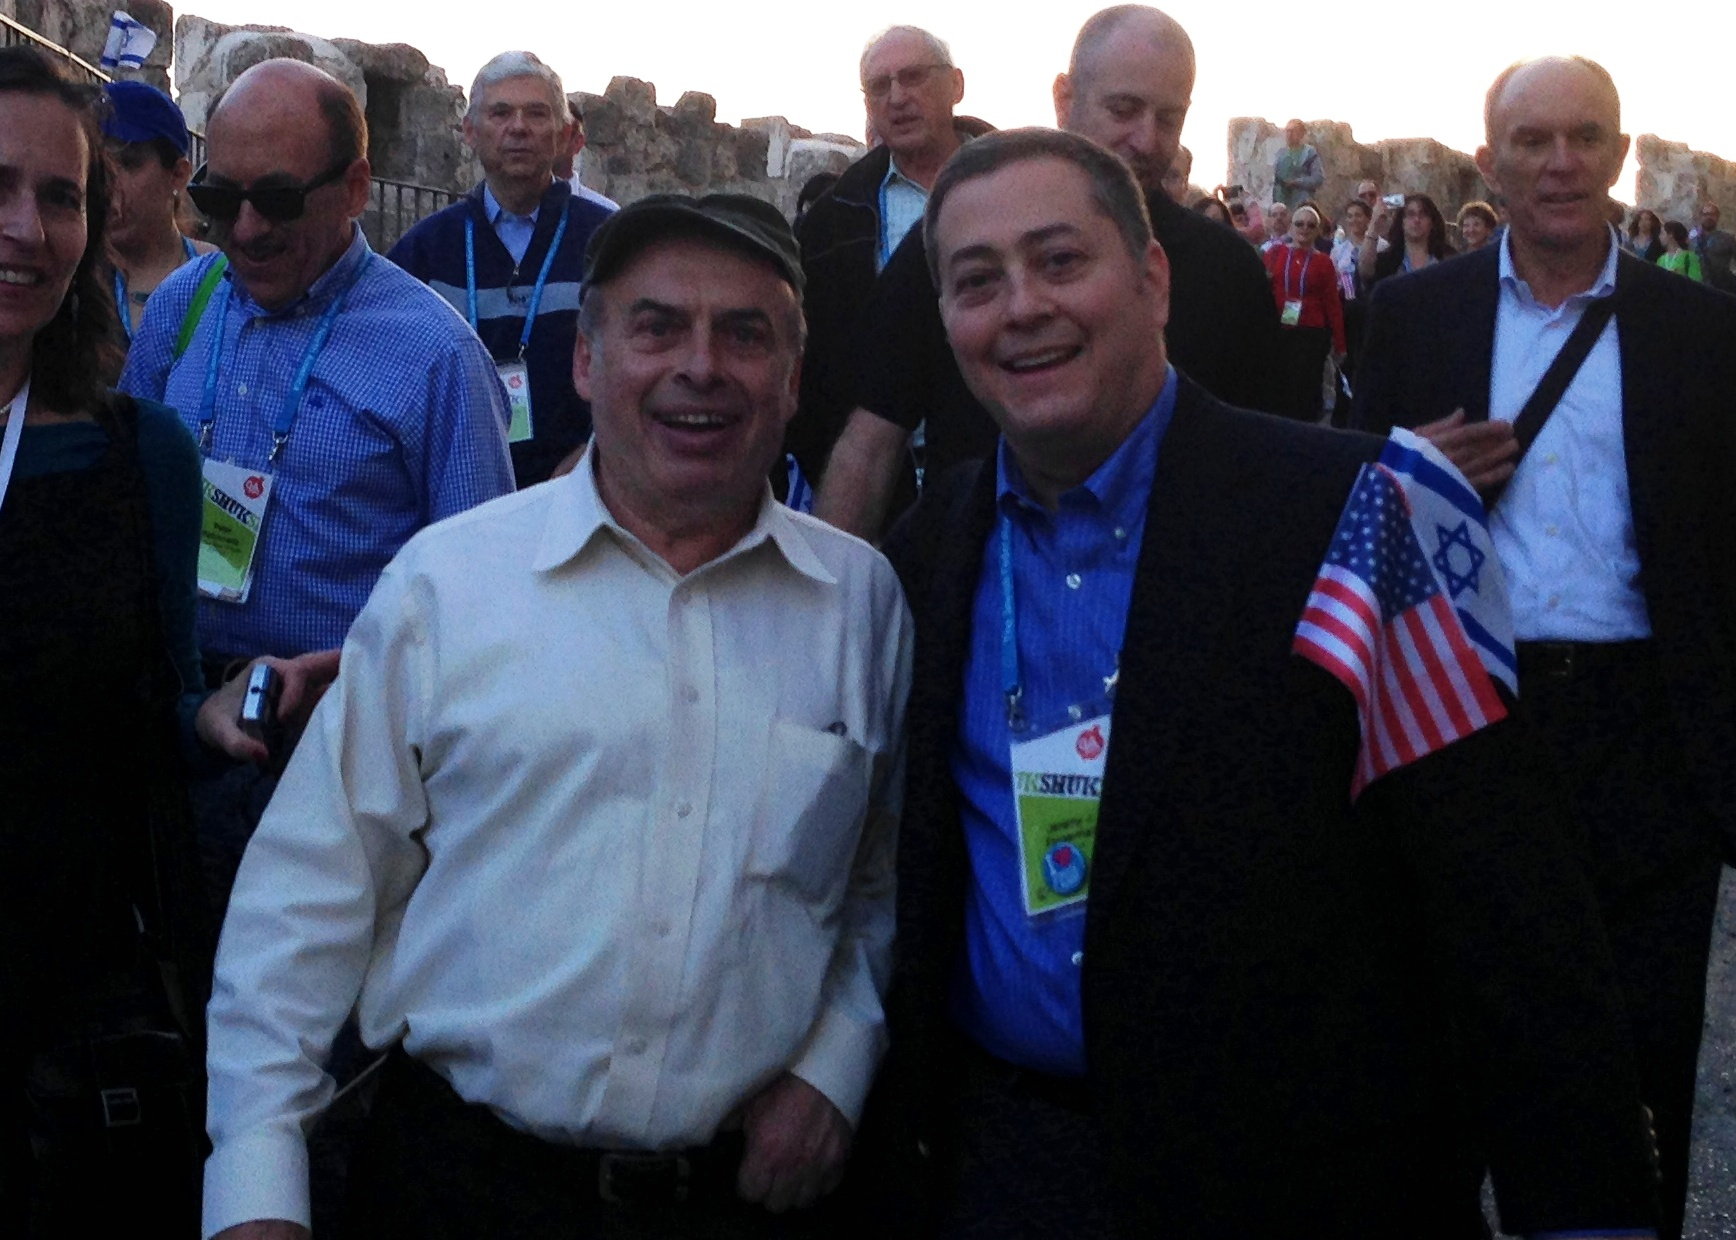 Jeremy with Natan Sharansky, chairman of the Jewish Agency, at the unity march to the Kotel